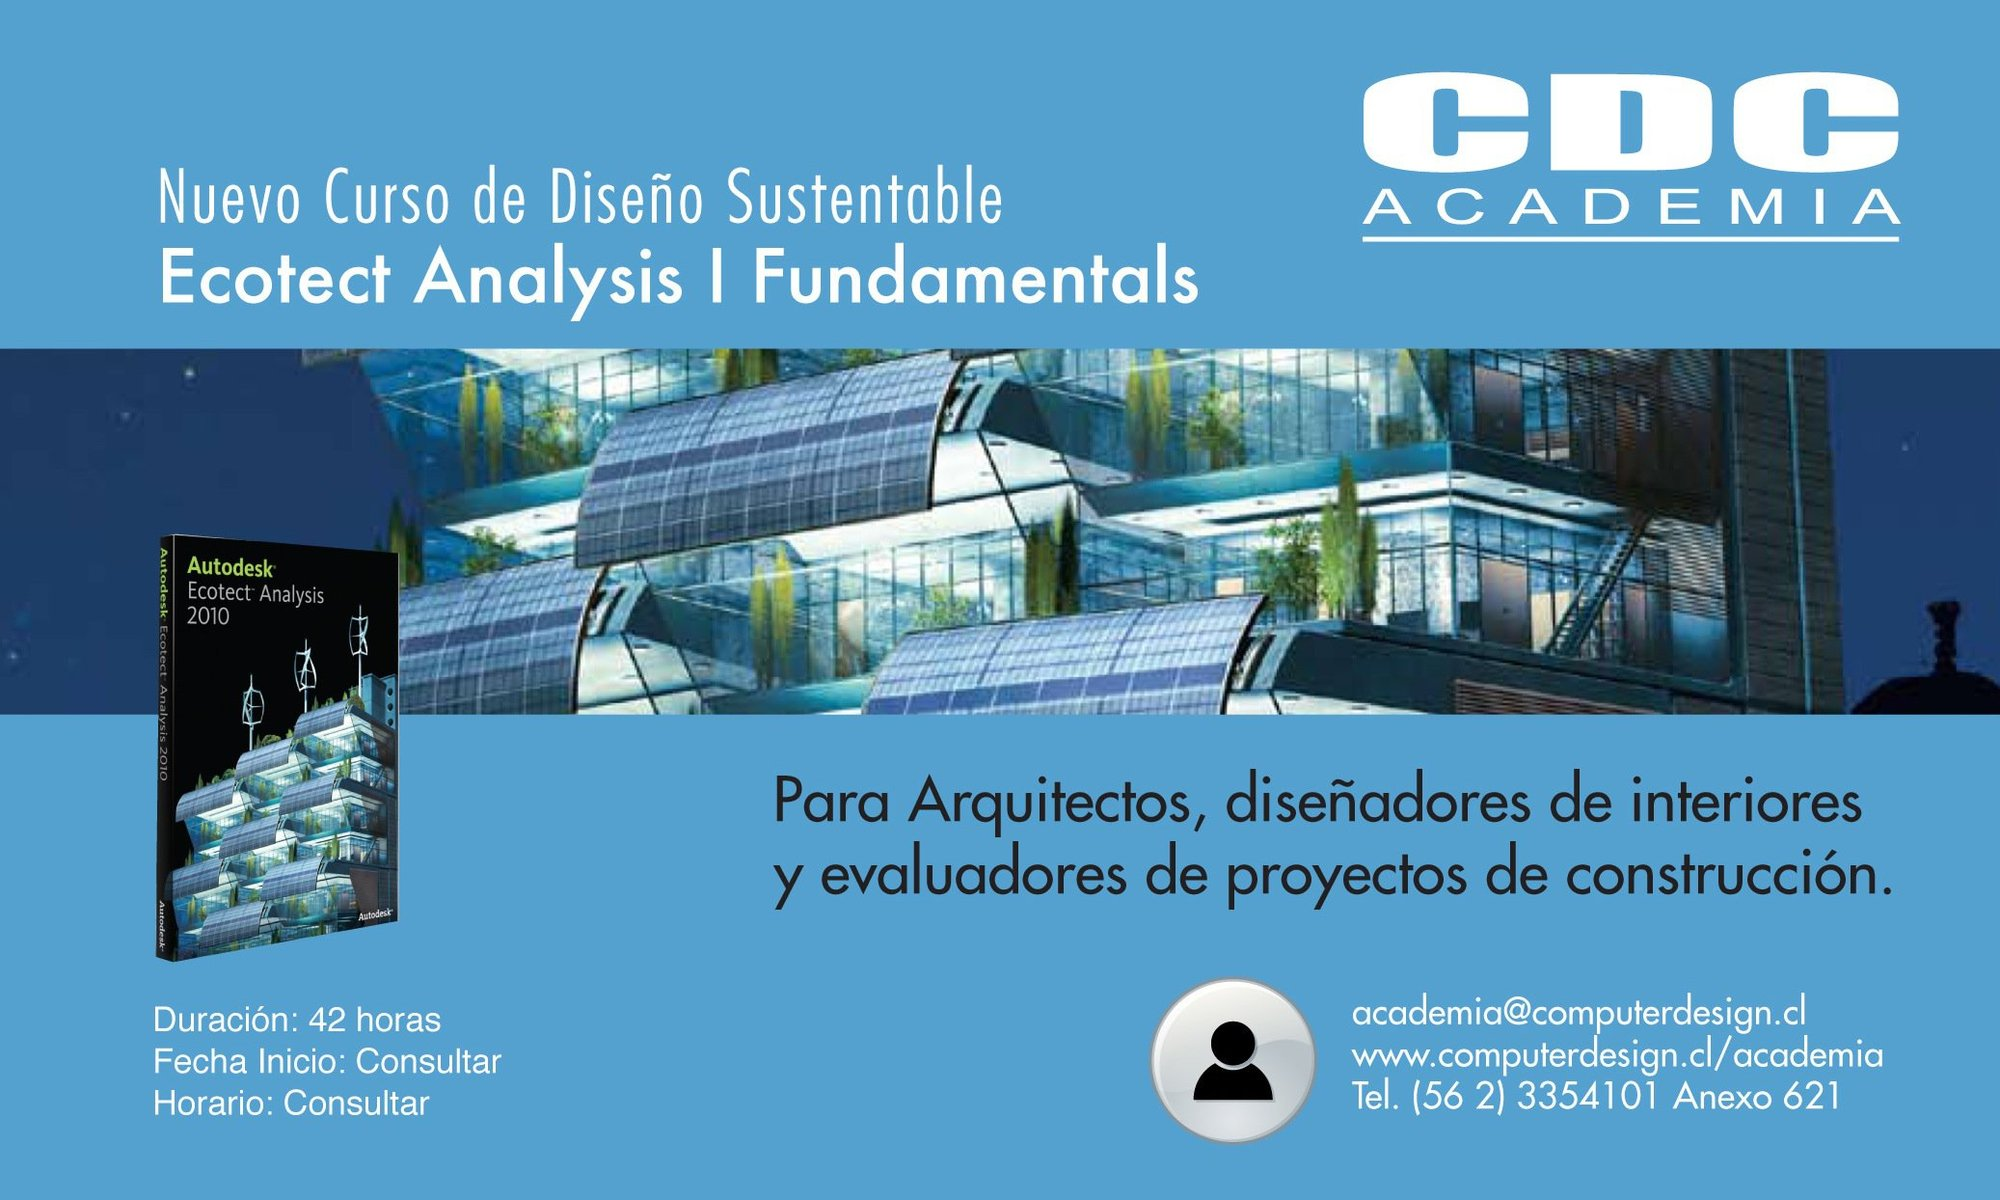 Nuevo curso ecotect analysis fundamentals cdc academia for Aulas web arquitectura